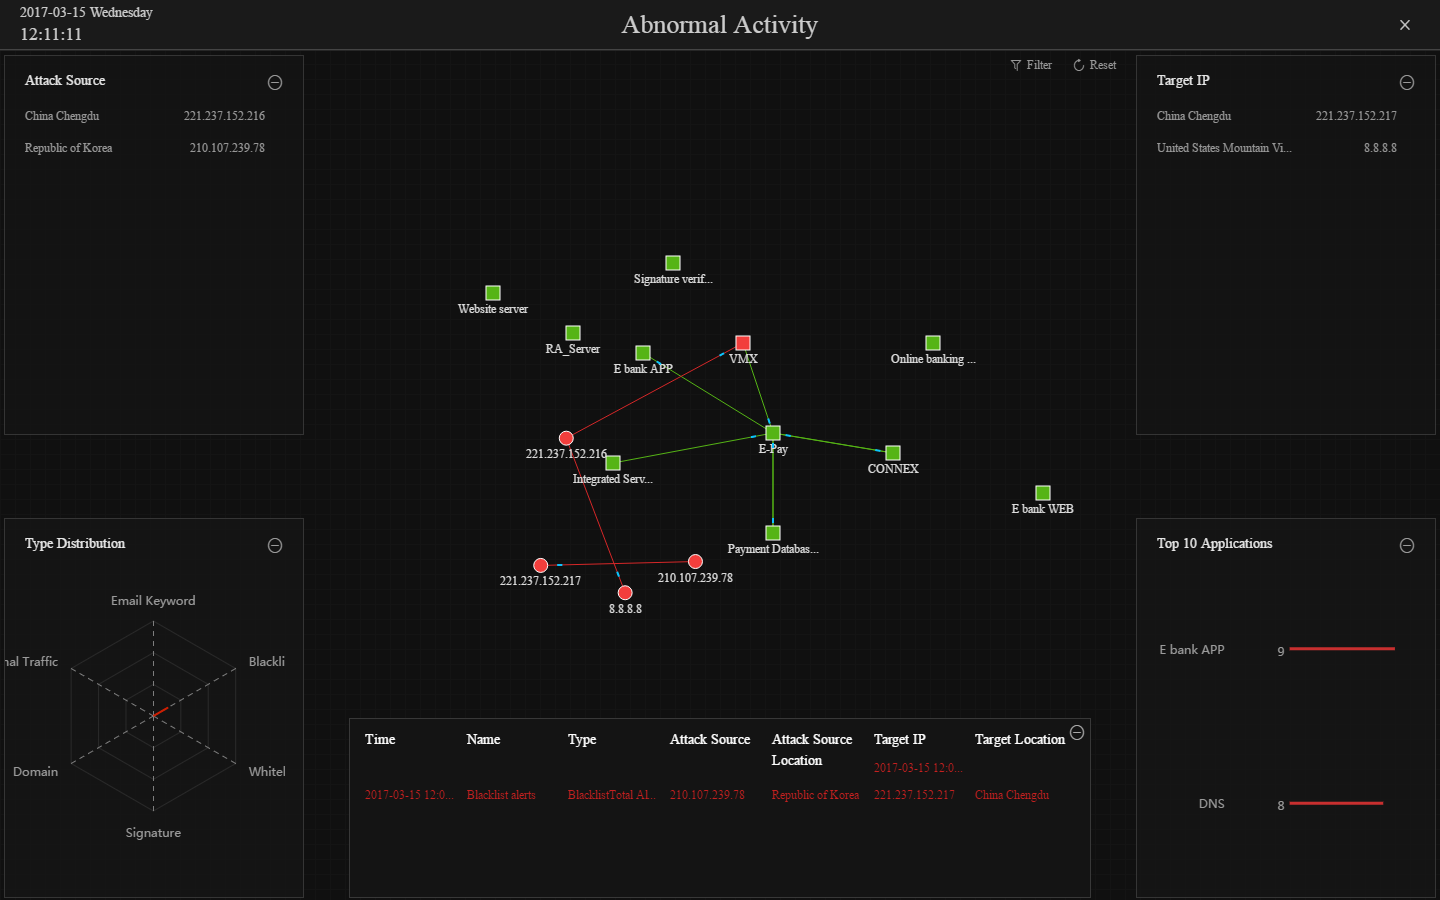 Real-time anomaly monitoring